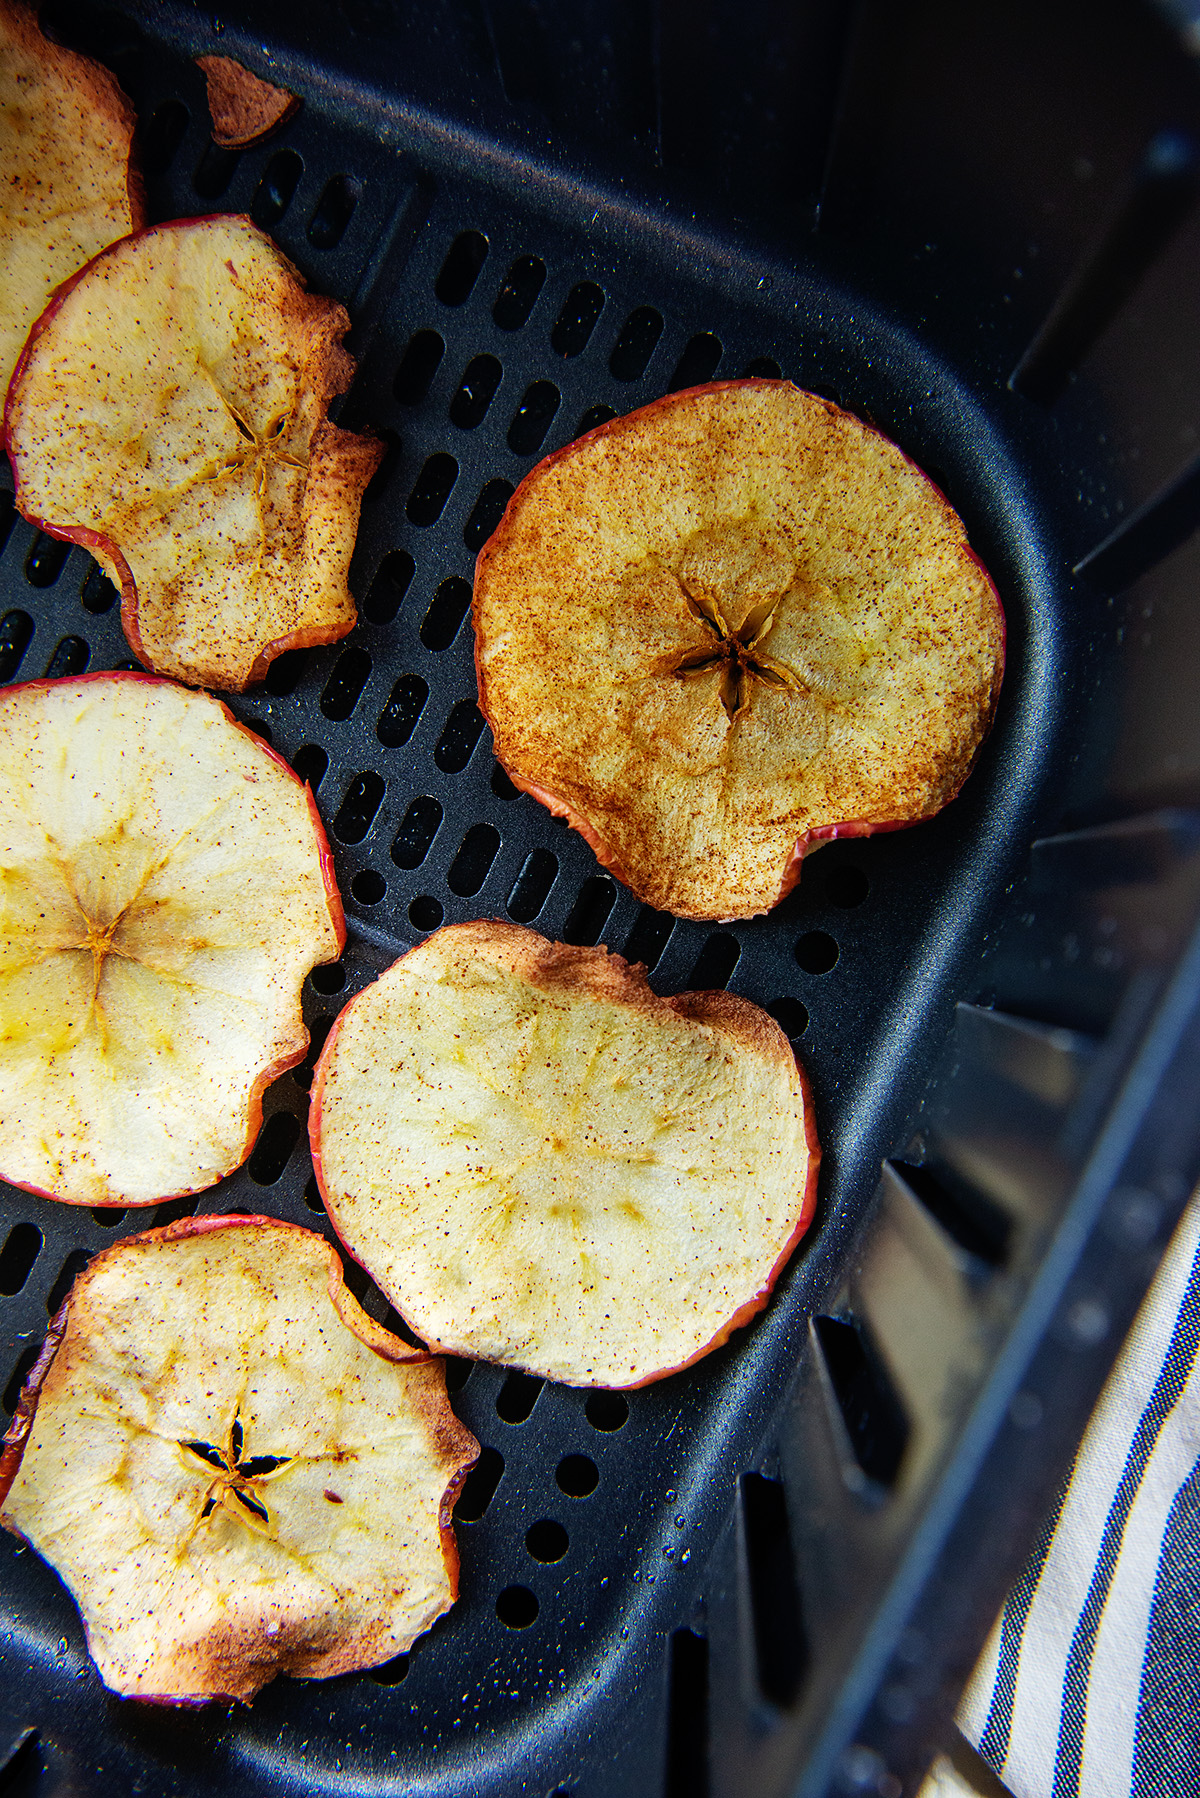 Cooked cinnamon apple chips in an air fryer basket